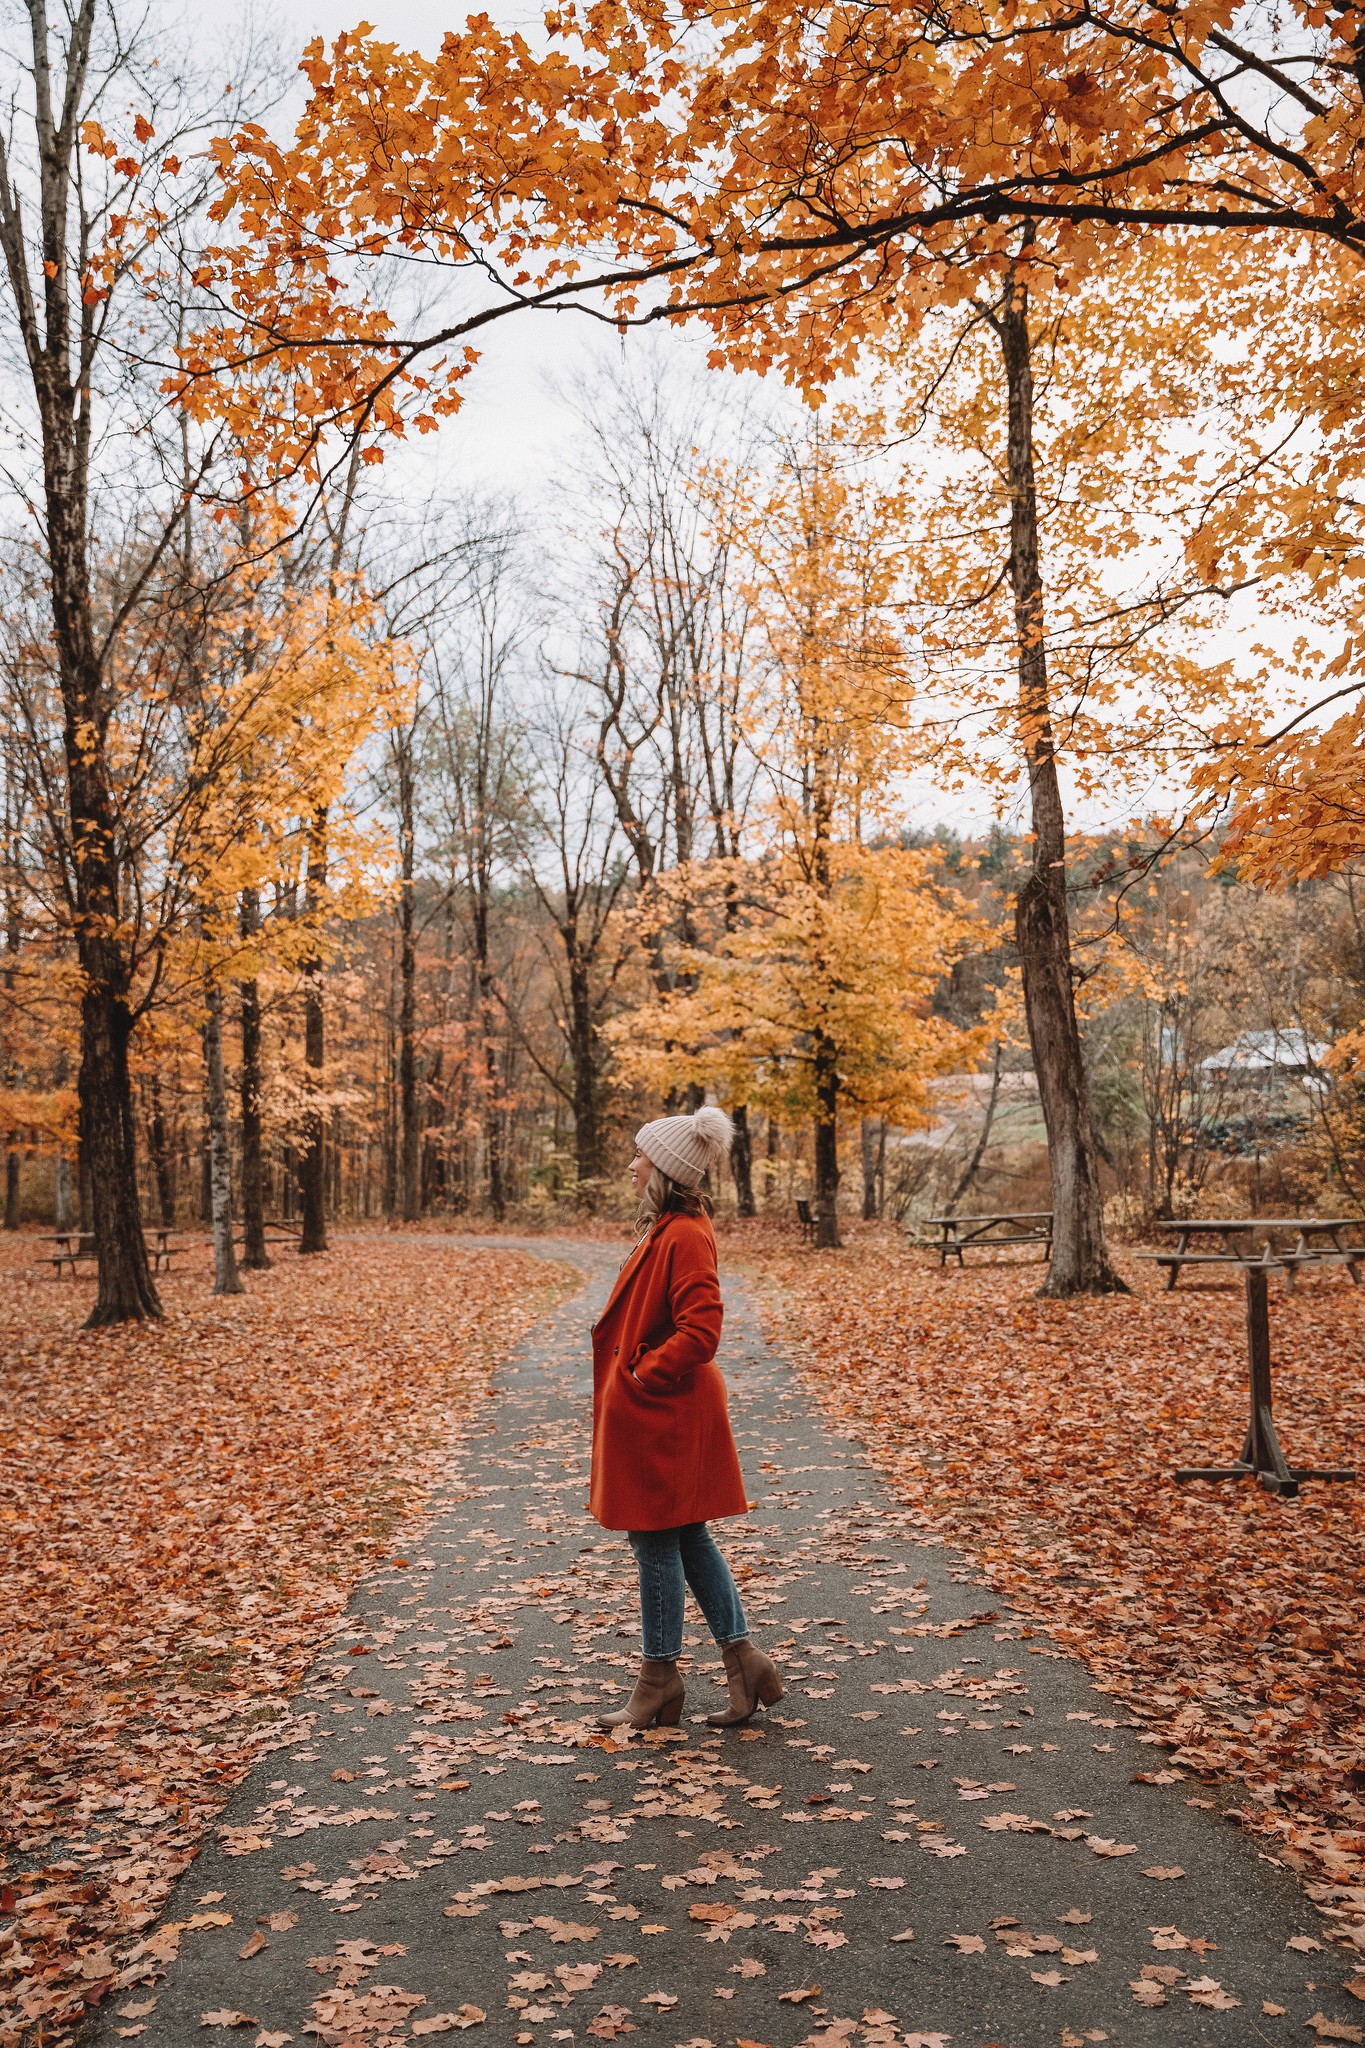 My Complete Vermont Fall Travel Guide: What to See, Do & Eat | Ultimate Fall Guide to Vermont | 5 Day Vermont Road Trip | Fall Foliage Road Trip Guide | Thompson Park Stowe Vermont